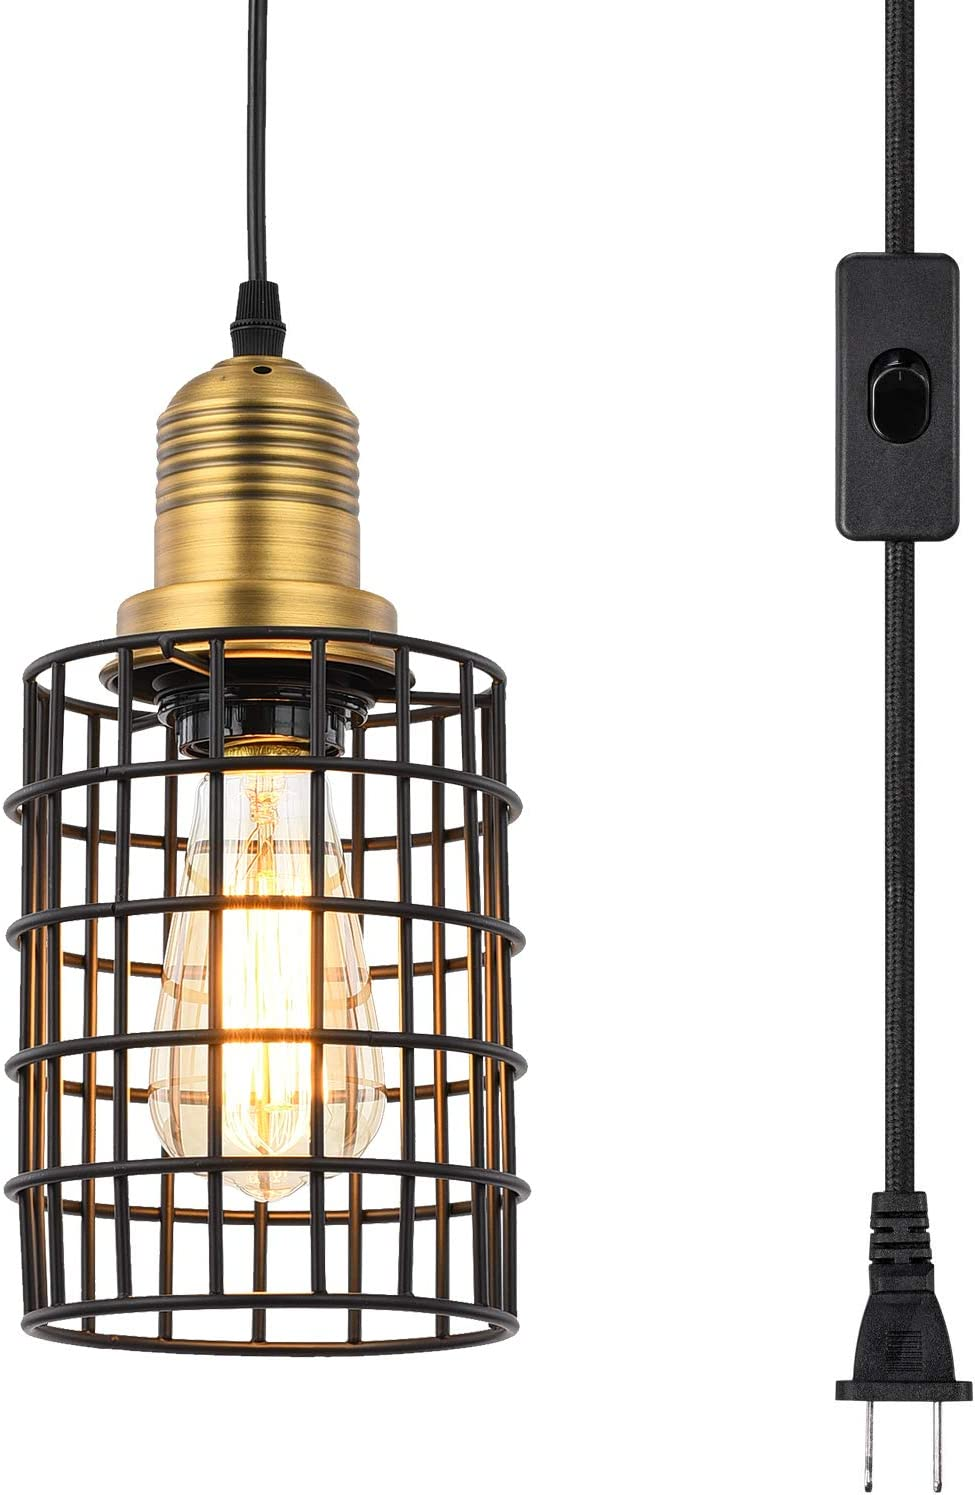 Topotdor Metal Cage Pendant Lighting with Plug in Cord,Vintage Industrial Hanging Ceiling Lamp E26 Edison Plug in Light Fixture On Off Switch Matte Black